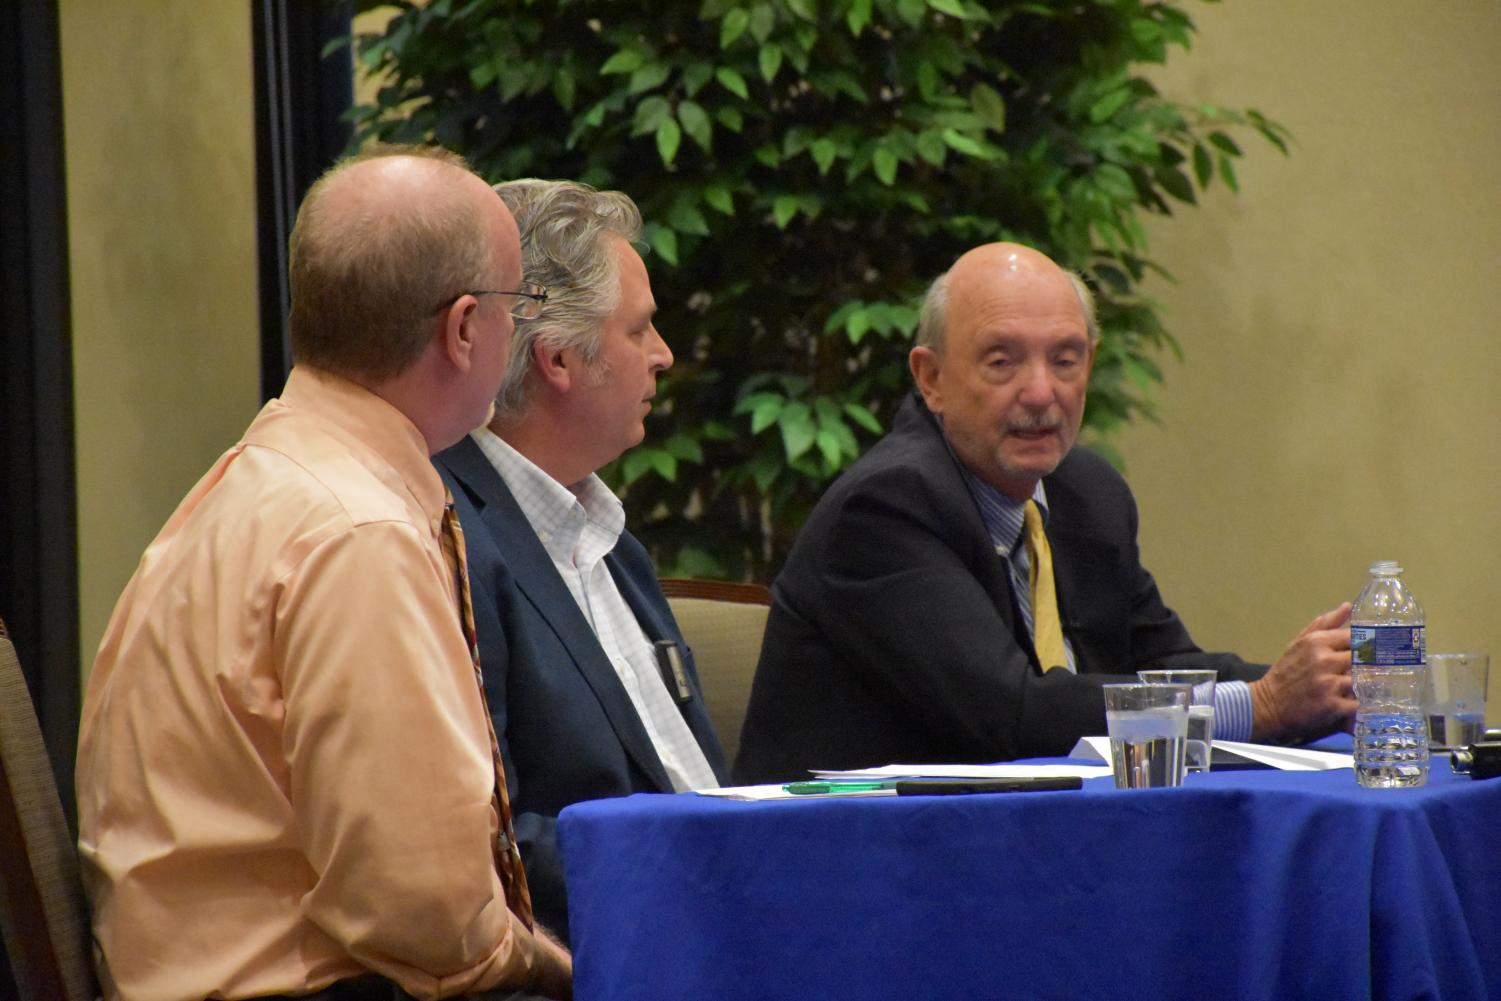 Marshall Journalism Professor Dan Hollis (Left) Eric Eyre (Middle) and John Hackworth (Right),  Eyre and Hackworth Pulitzer Prize winners, spoke to Huntington community members about being an informed citizen and the path to the Pulitzer Prize Monday, at the Brad D. Smith Foundation Hall.